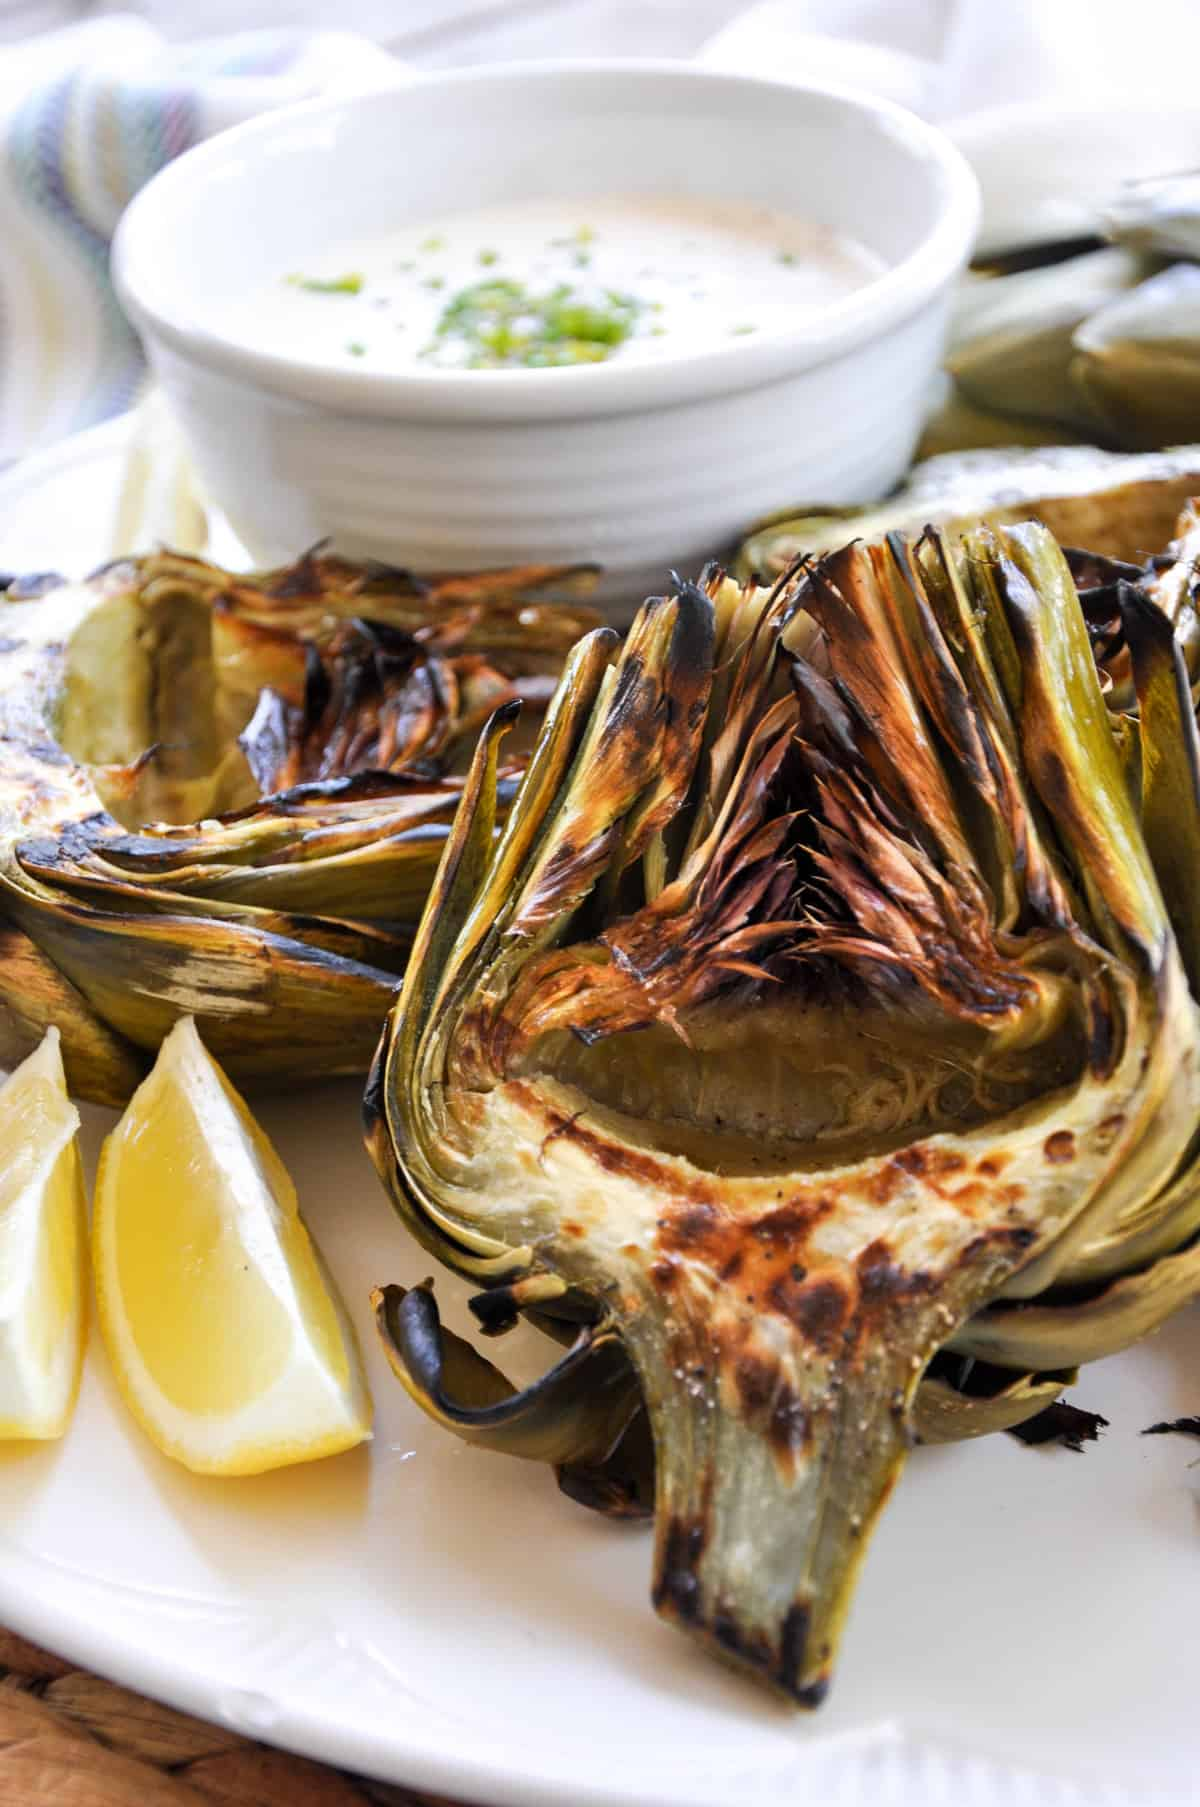 Grilled Artichokes with Zesty Garlic Aioli